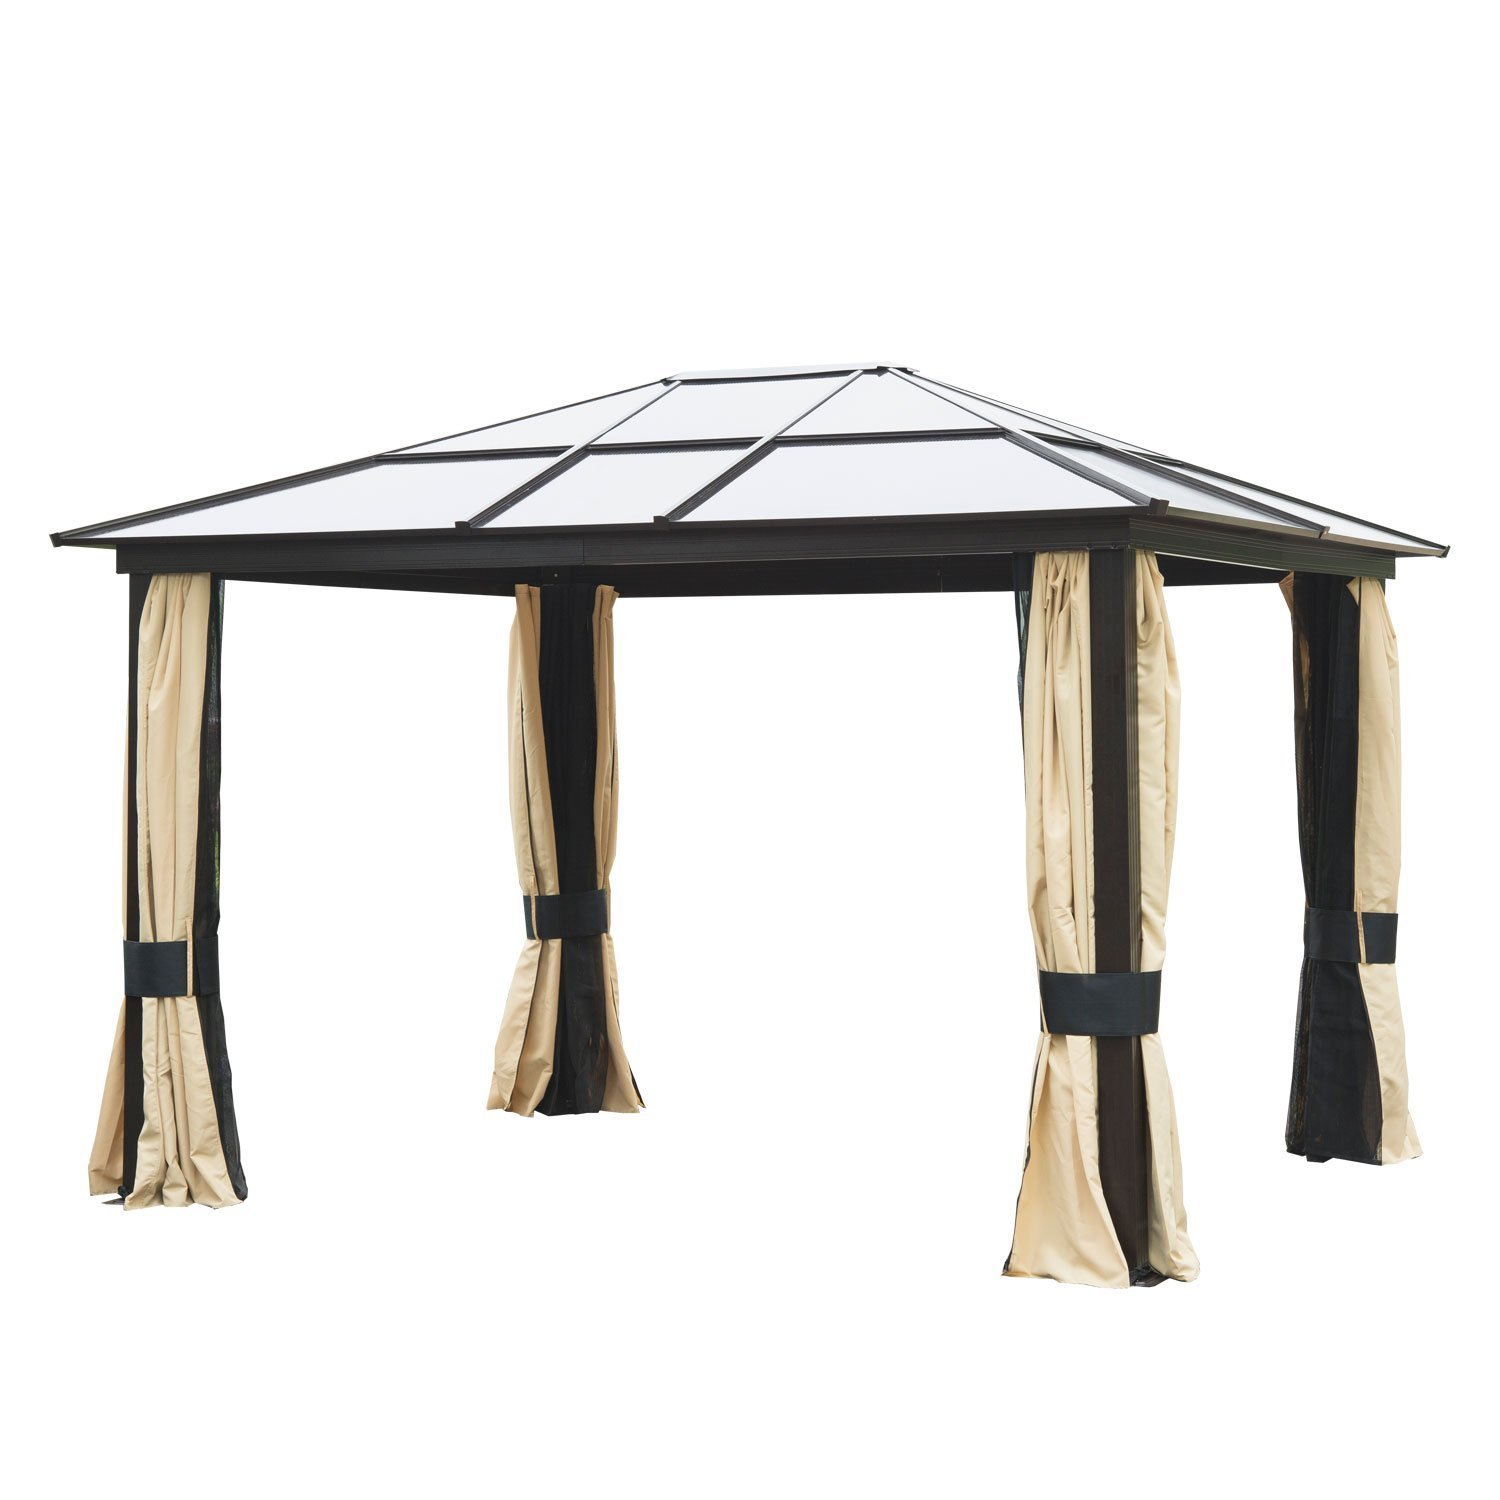 Outsunny 12' x 10' Outdoor Patio Canopy Party Gazebo w/Mesh and Curtains - Beige